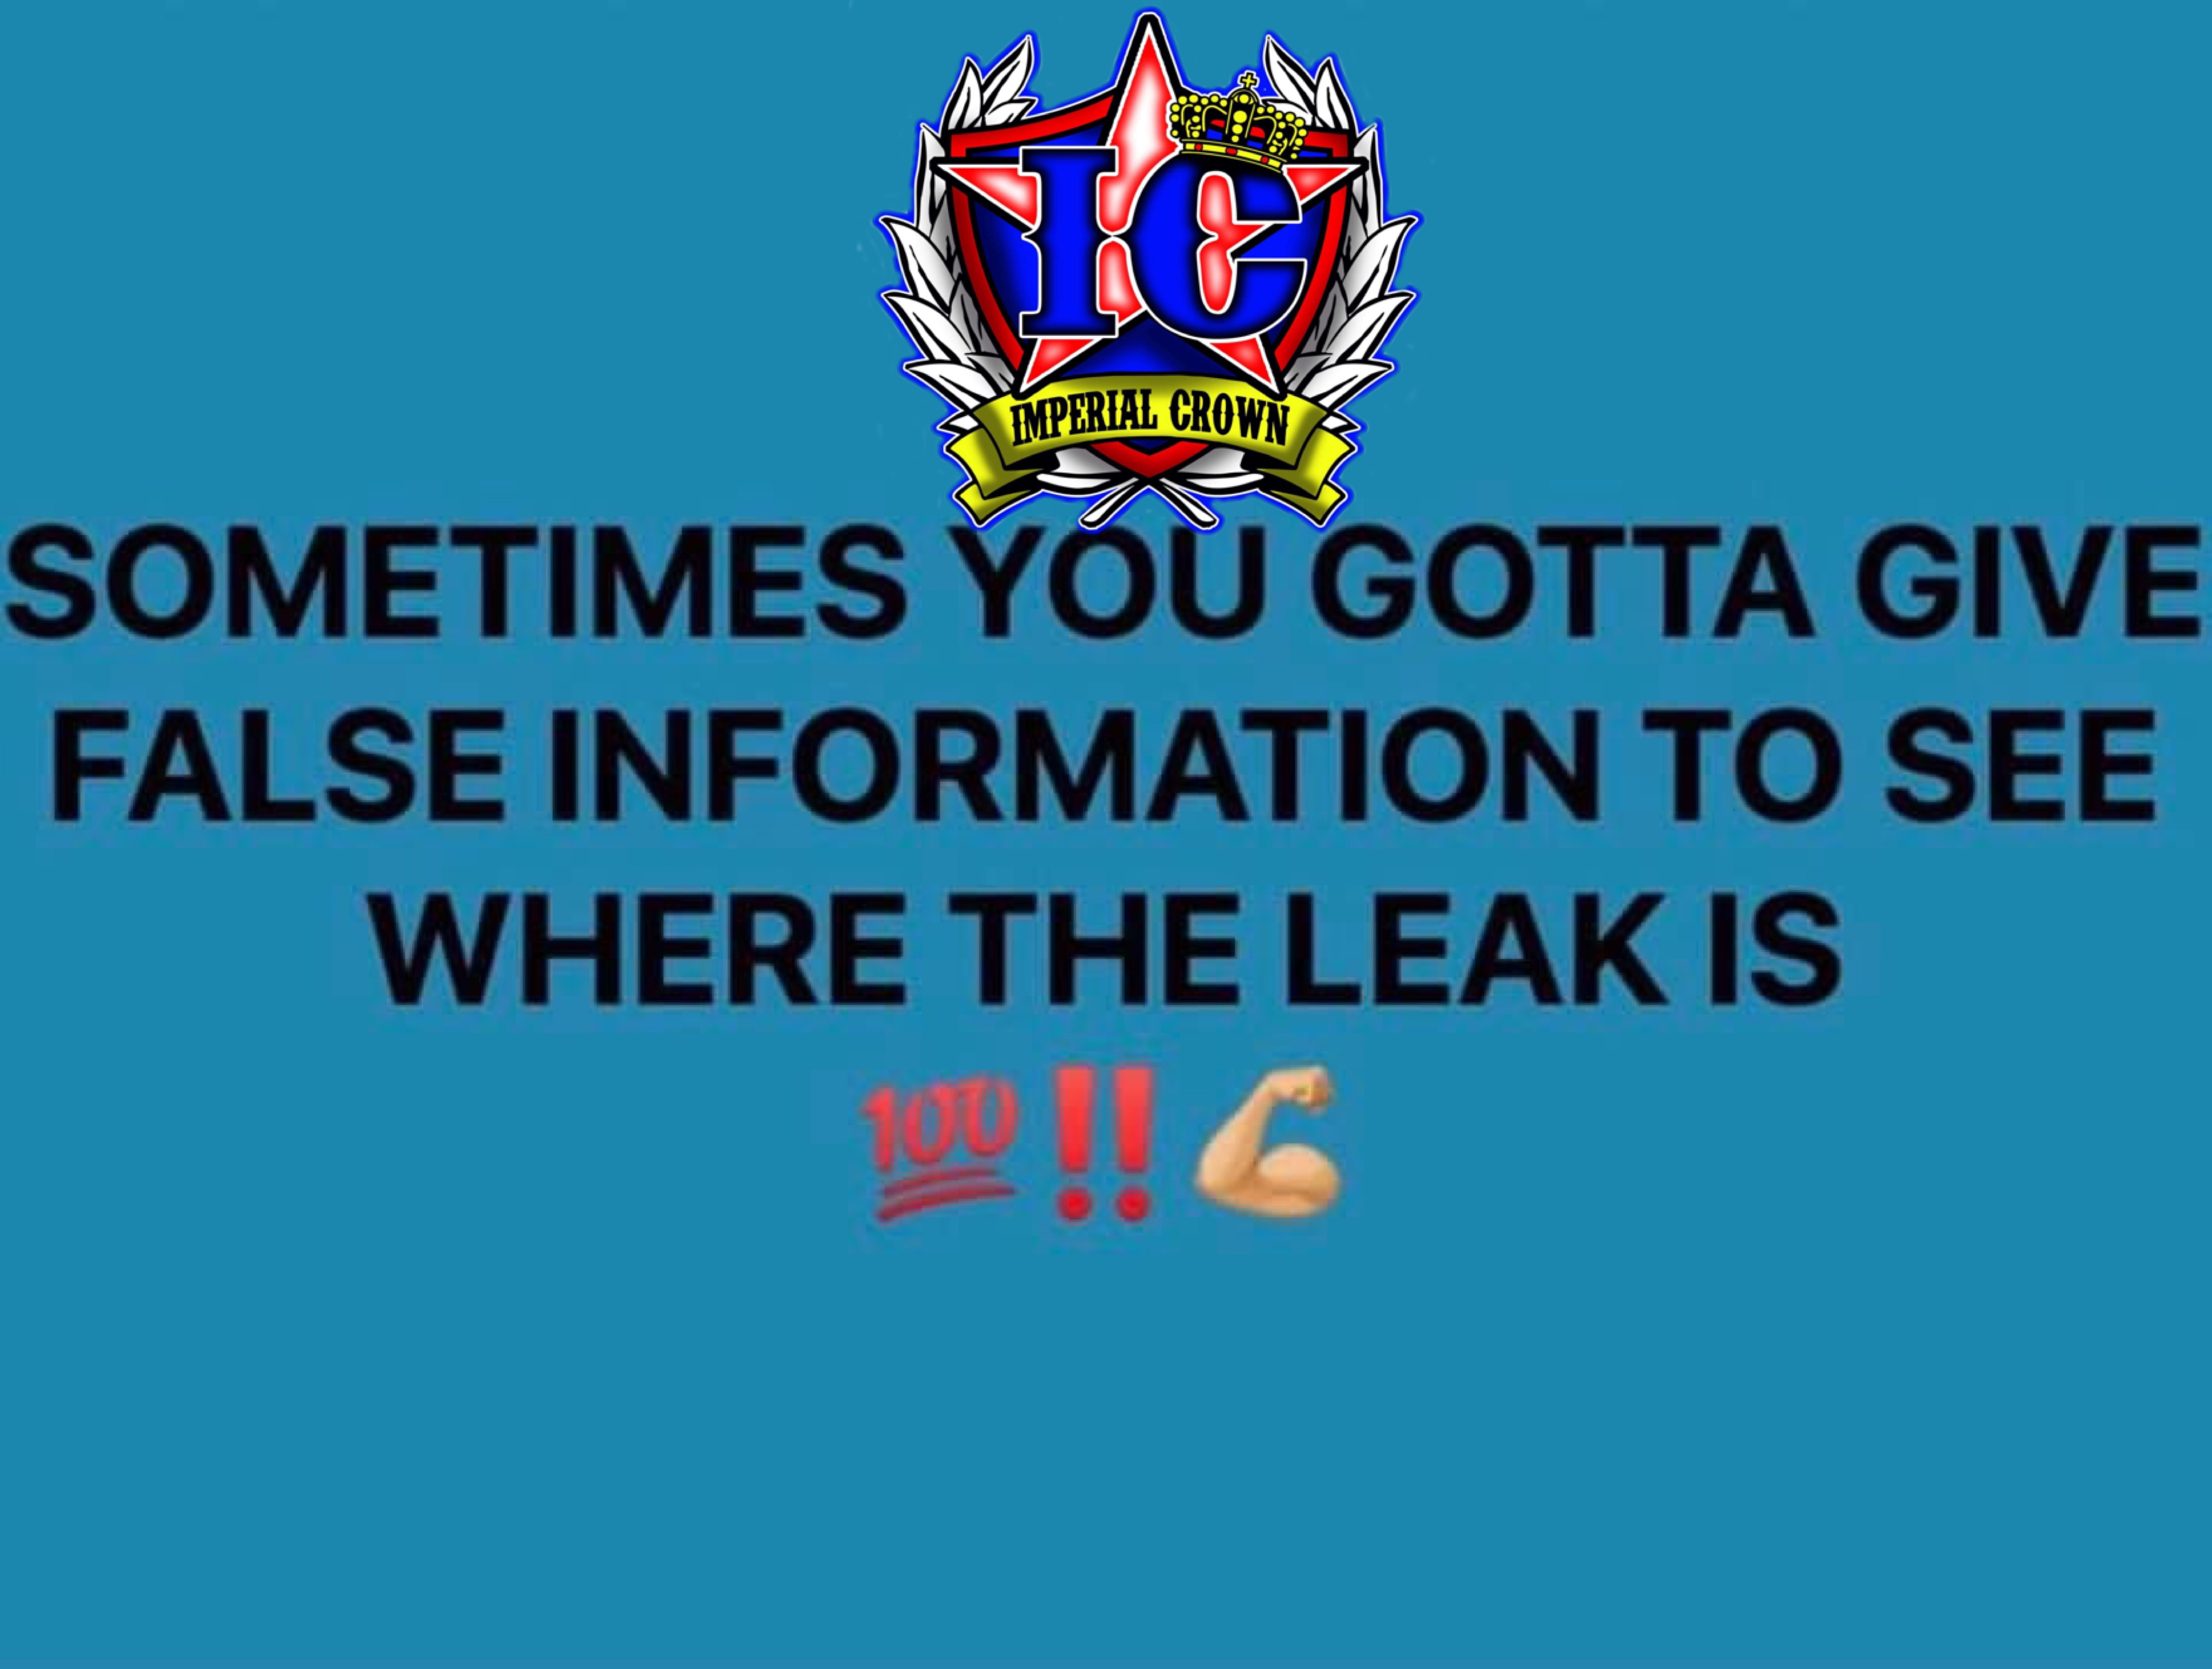 Sometimes you gotta give false information to see where the leak is